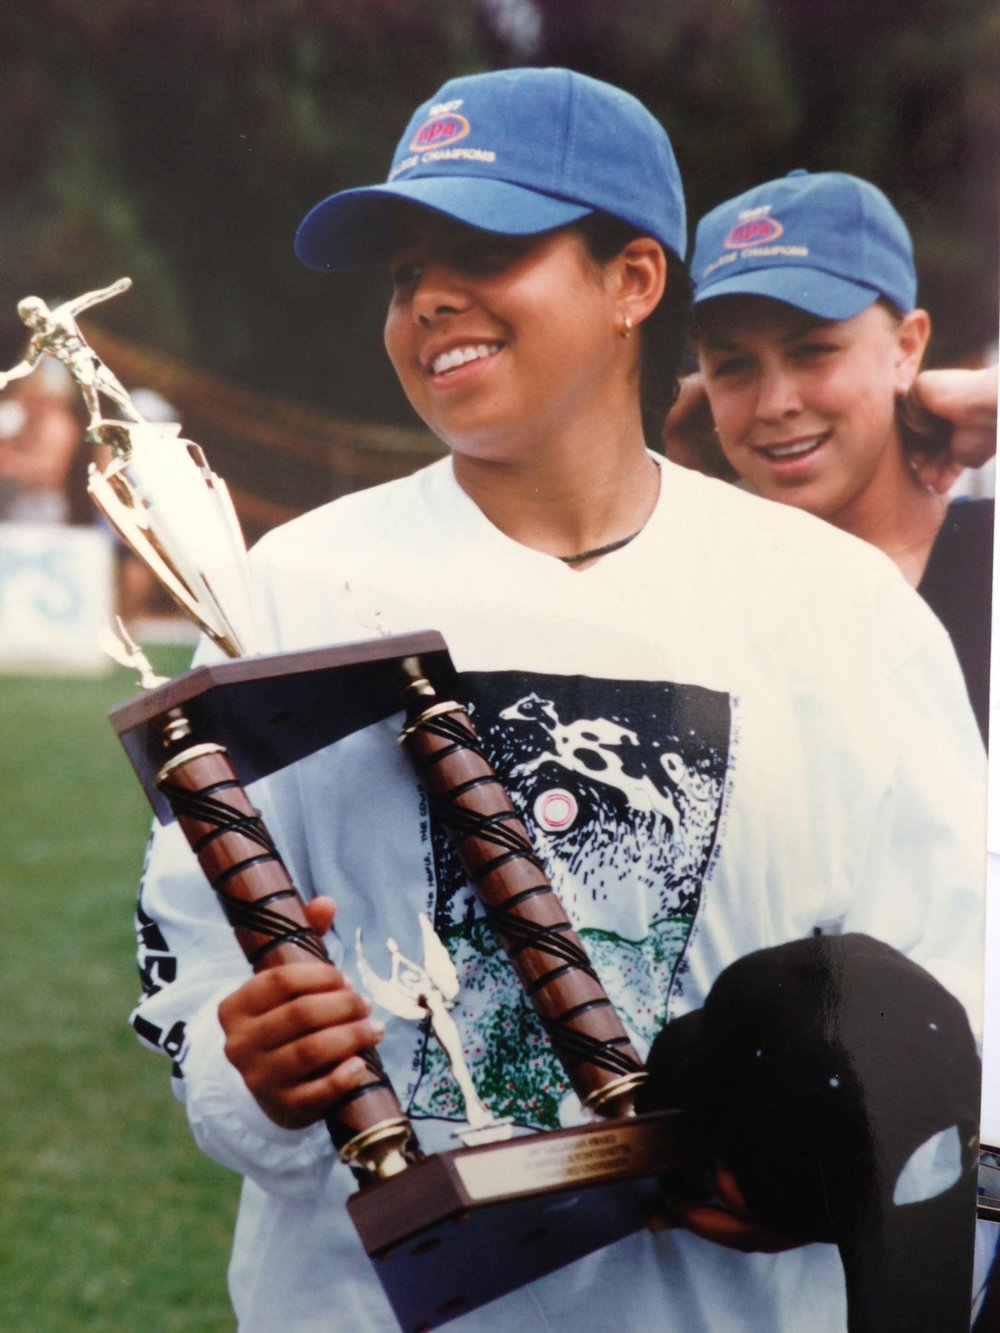 Left with Riot at Nationals, (Christina Schmidt, UltiPhotos).  Above winning the Callahan award at College Nationals with Stanford Superfly, 1997.